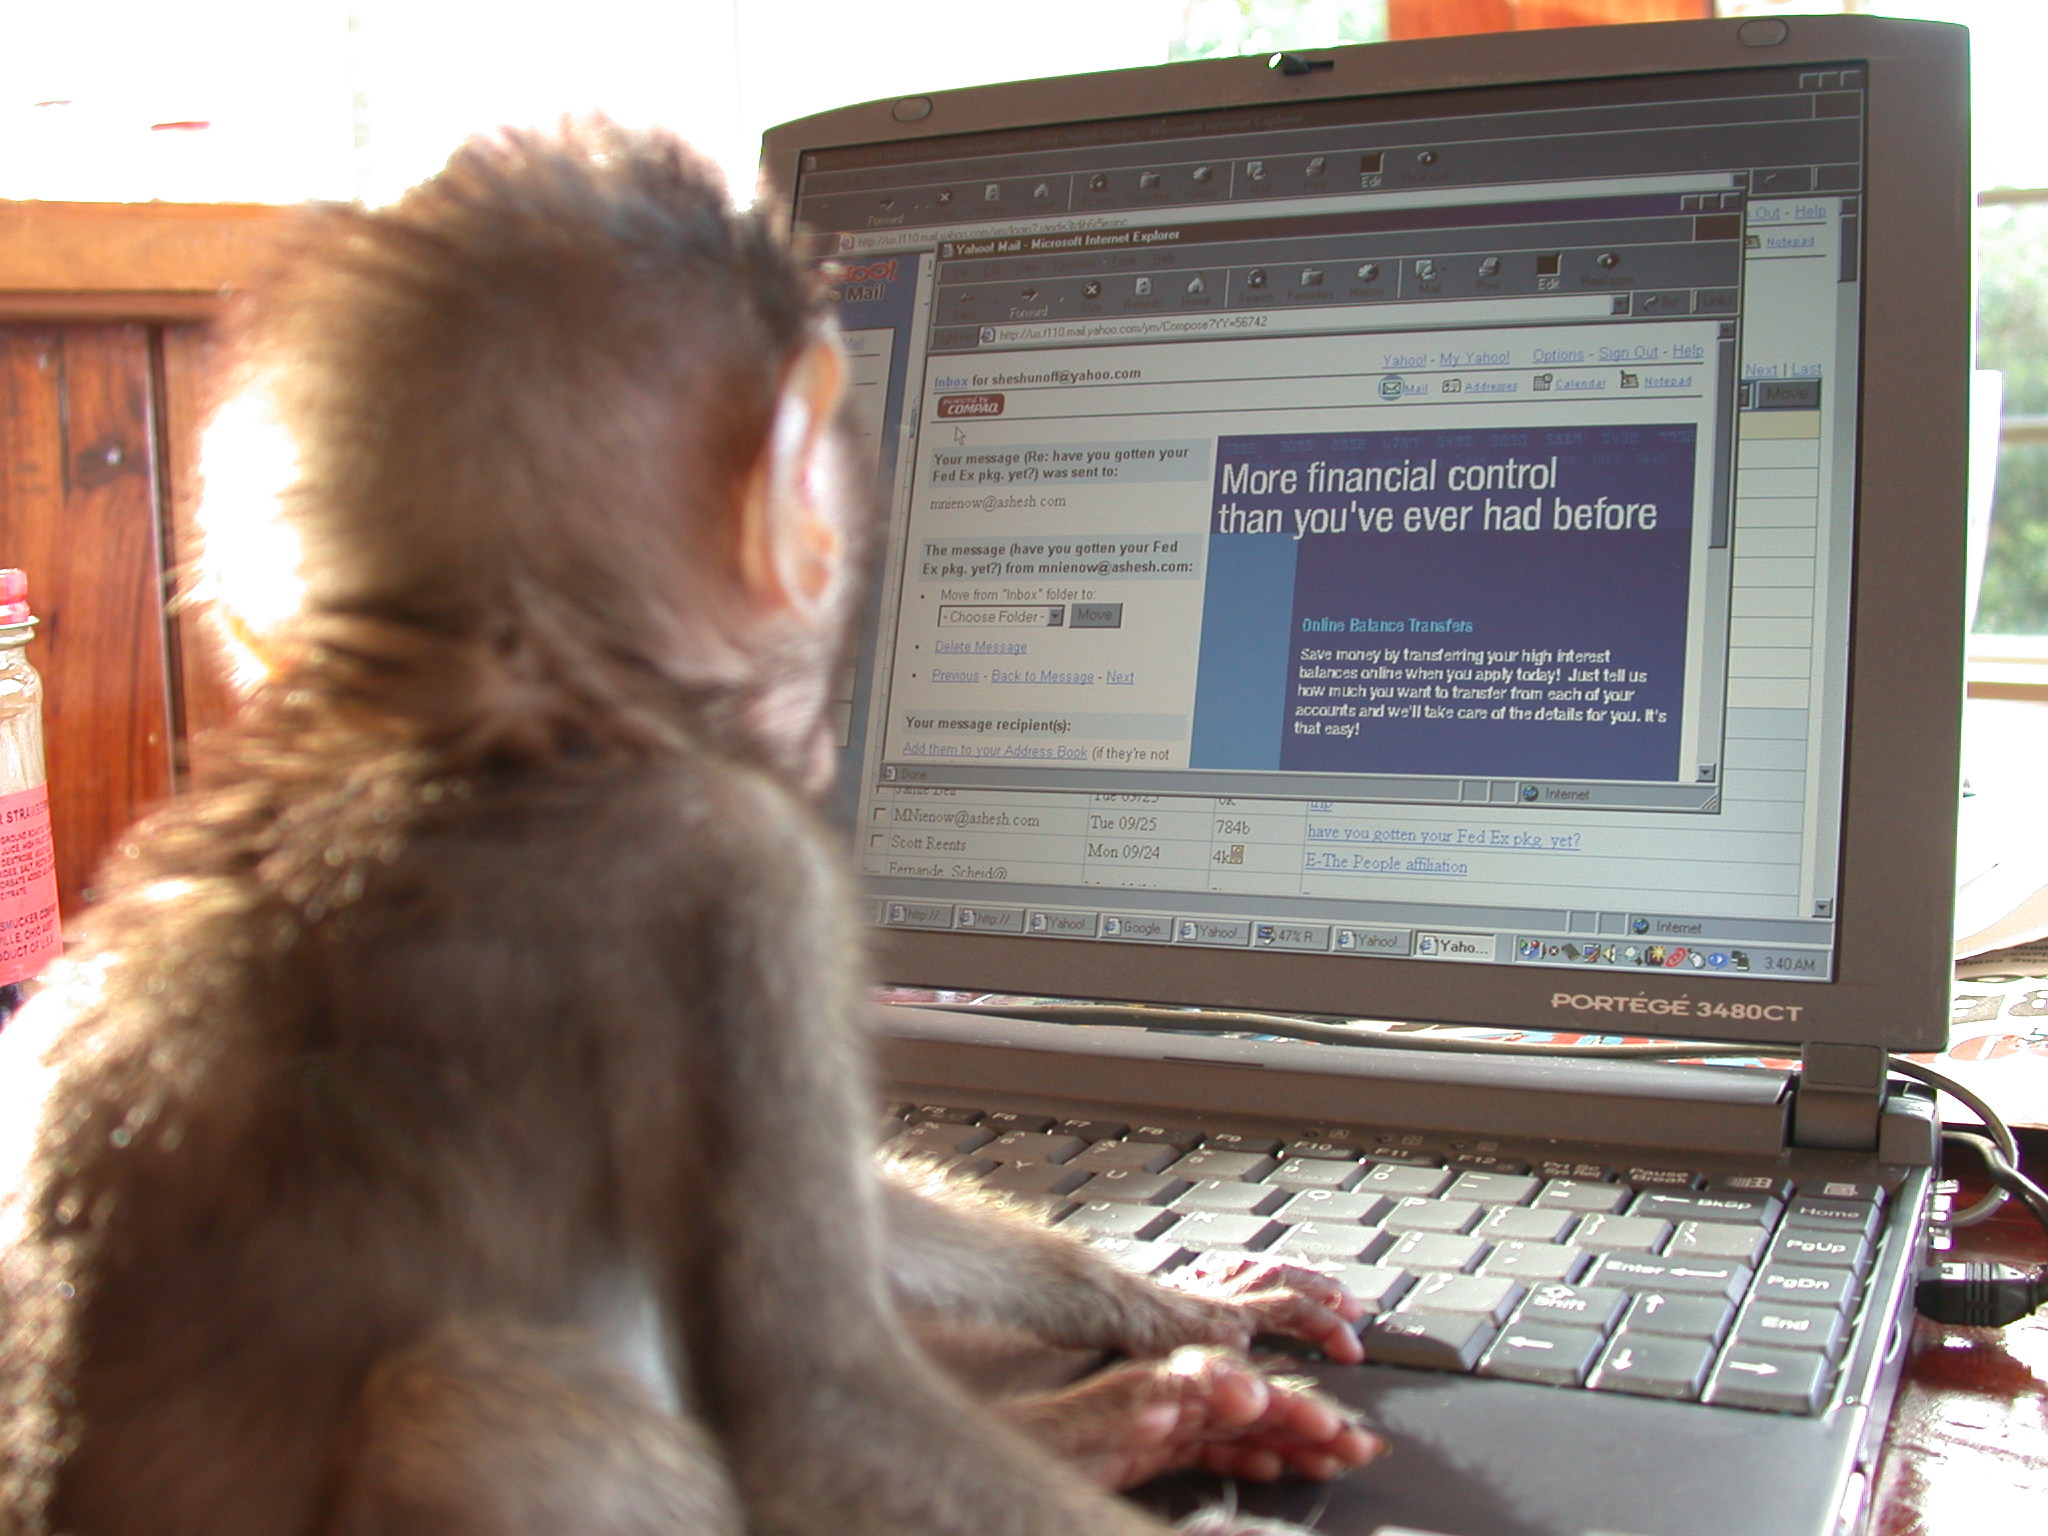 Monkey in front of a computer - Sheshunoff - abeginnersguidetoparadise.com.JPG